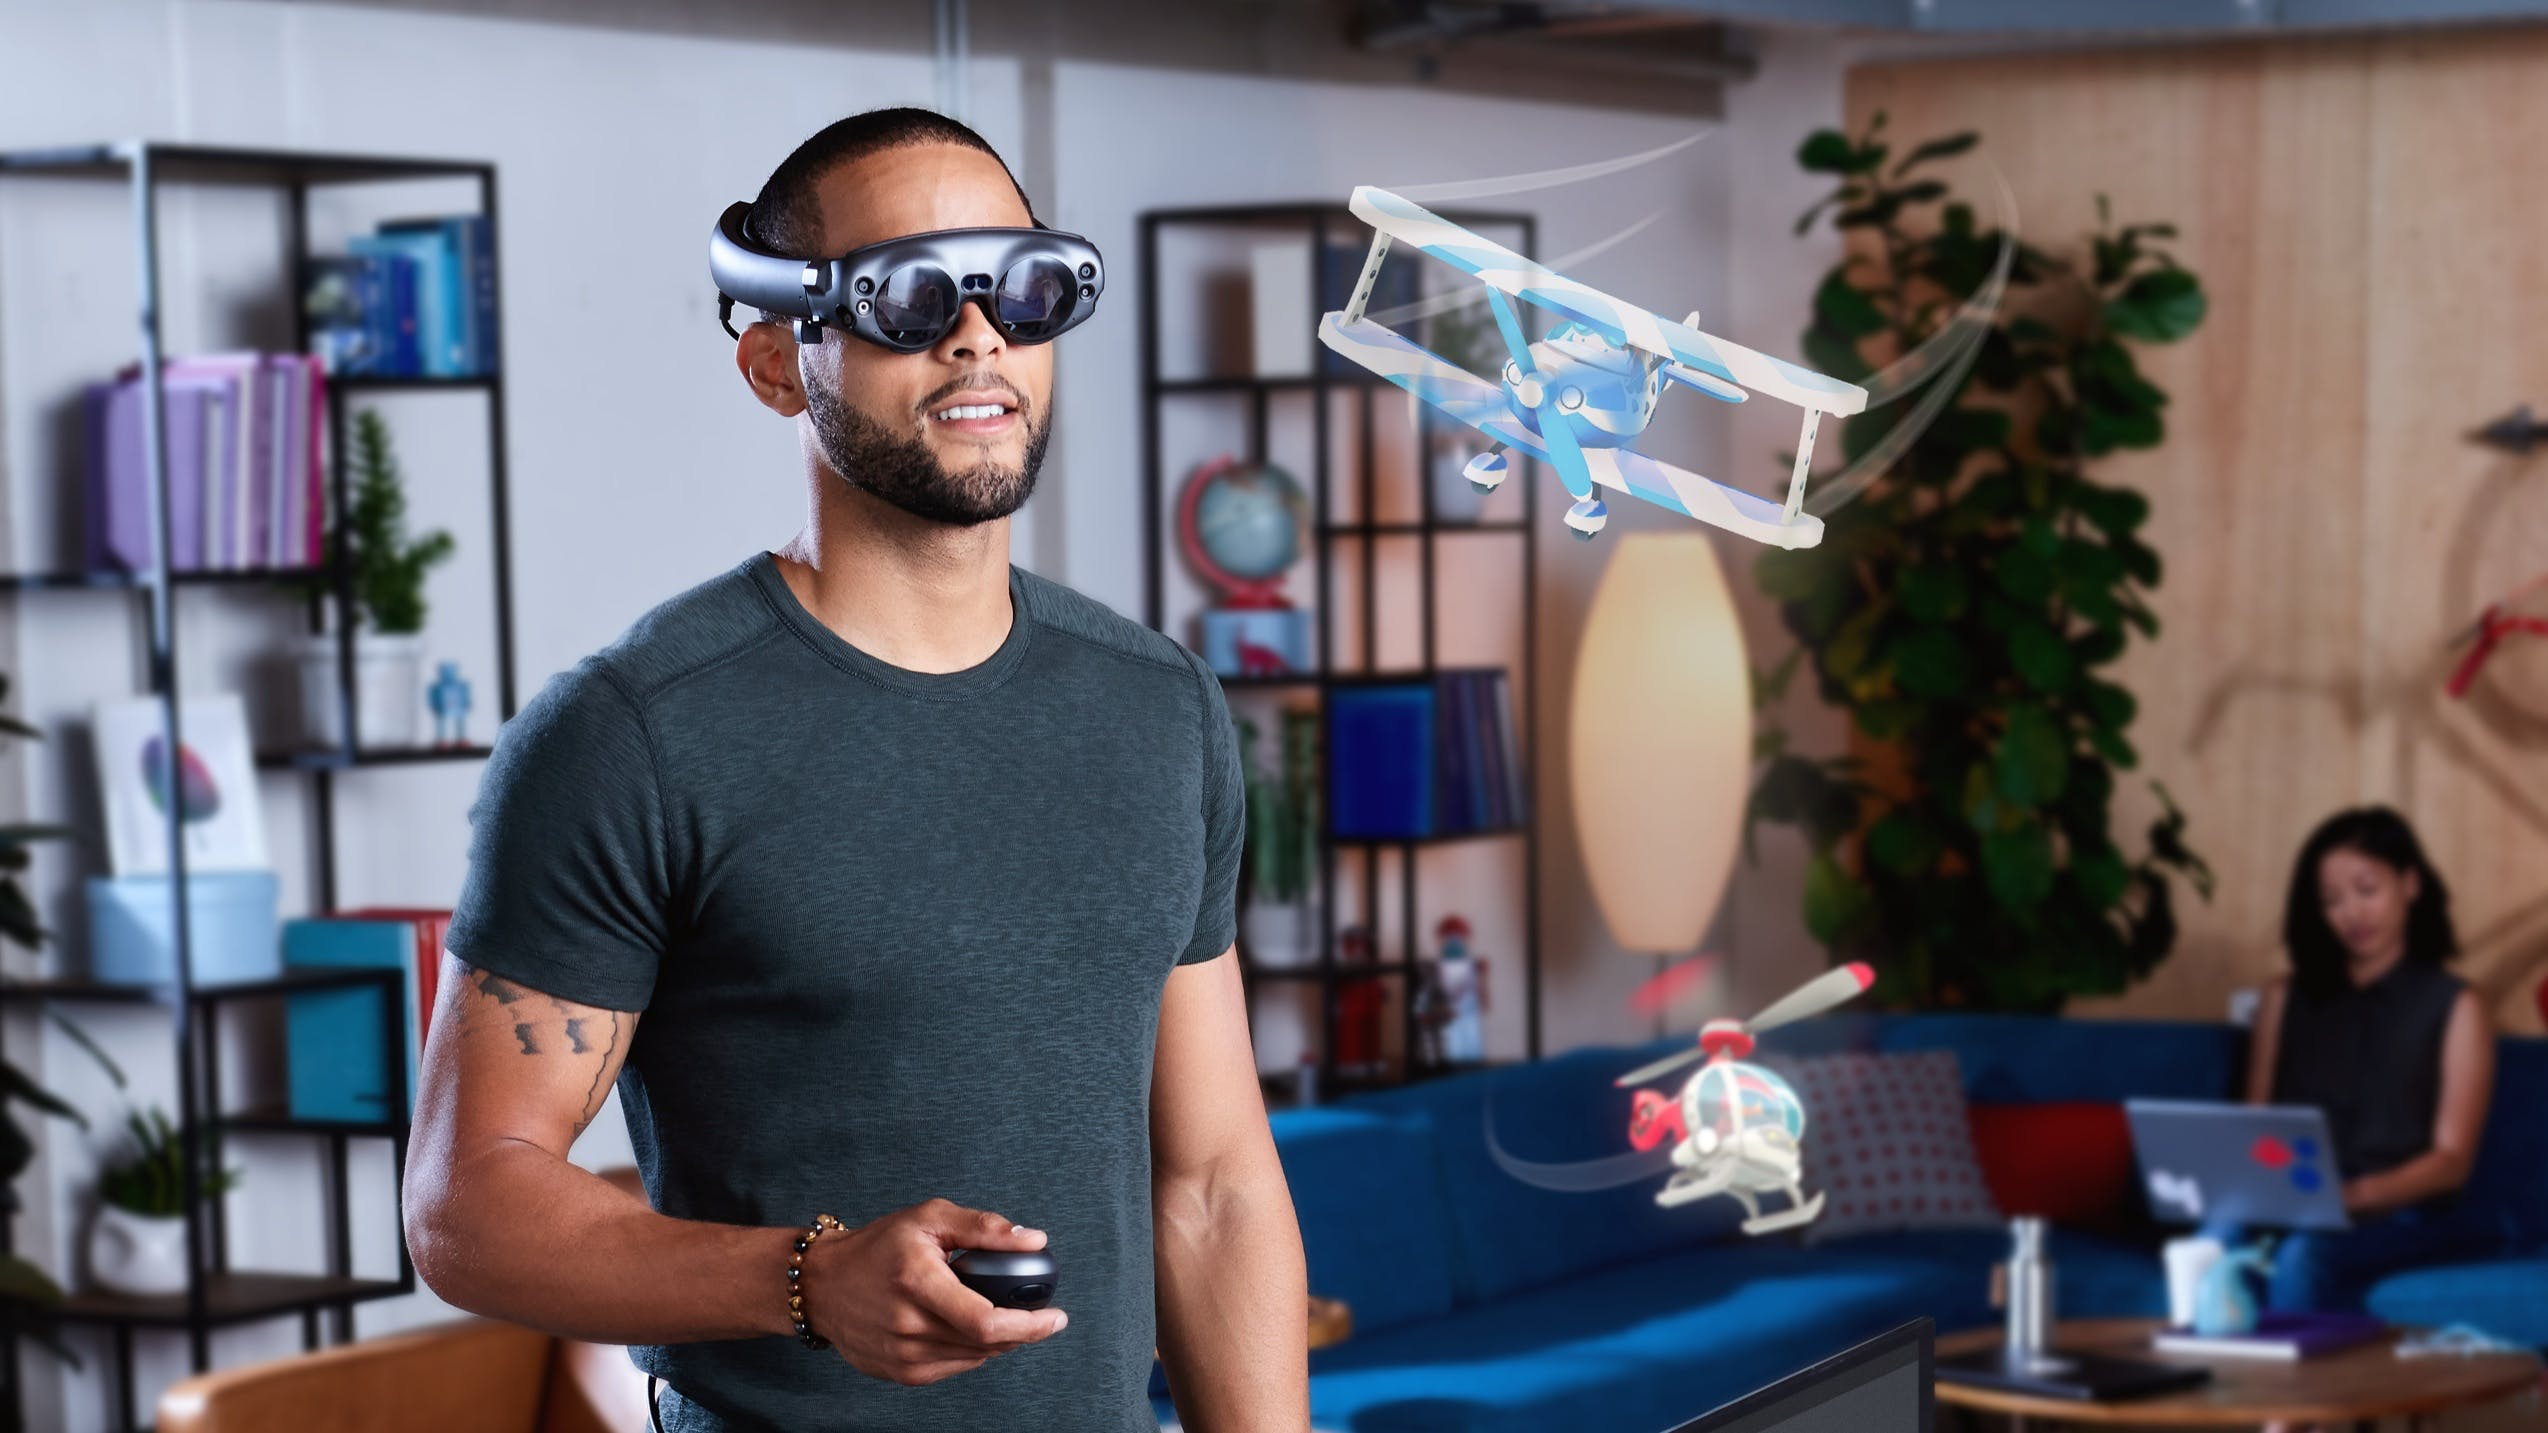 Develop for Magic Leap 1